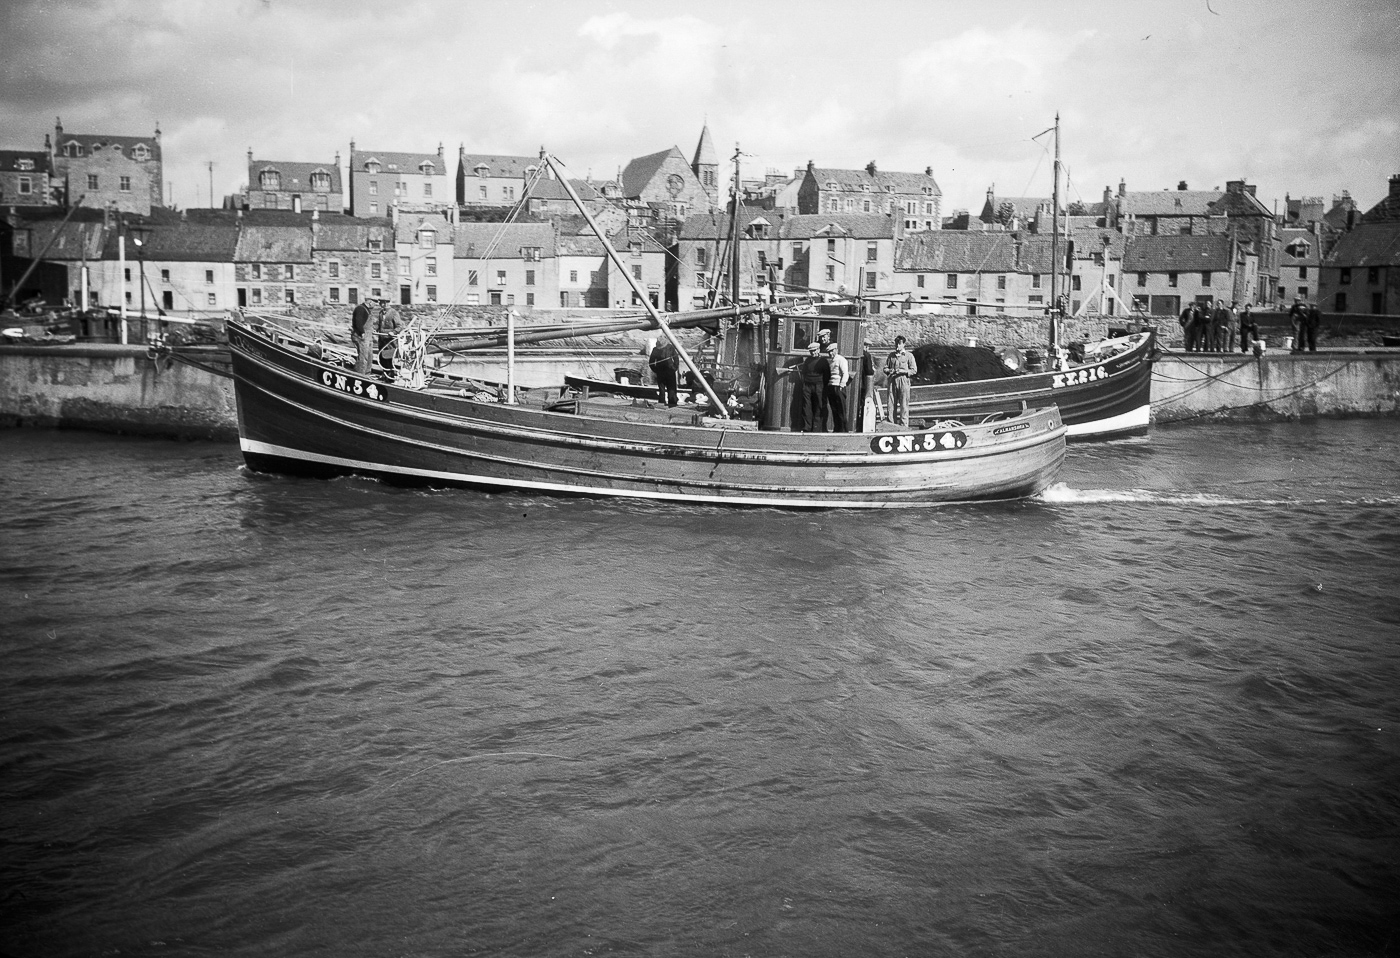 'Almanzora' CN54, in harbour, St Monans, 1949. 'Almanzora', CN54, was built by J. N. Miller boatbuilders, St Monans, for the Robertson brothers who lived on the west coast. She was 53ft long and weighed 23 tons. She later became 'Mairead', TT104, then 'Sancta Virgo', CY254. She stopped fishing in 1979 then was later sold abroad.